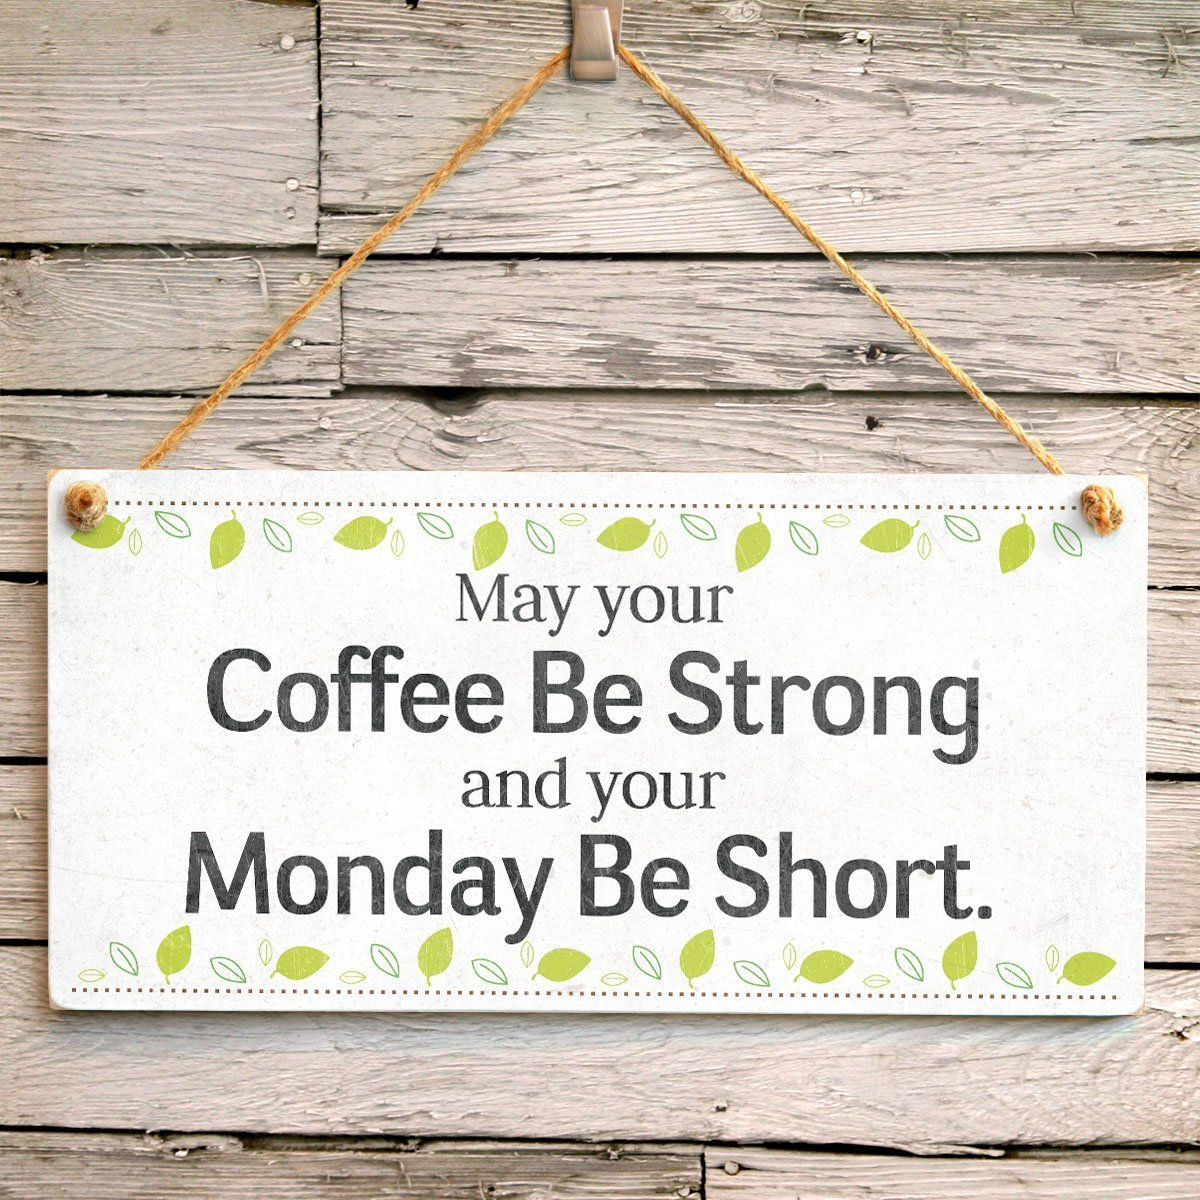 Funny Office Humour Novelty Gift Sign for Friends 10x5 Meijiafei May Your Coffee Be Strong and Your Monday Be Short